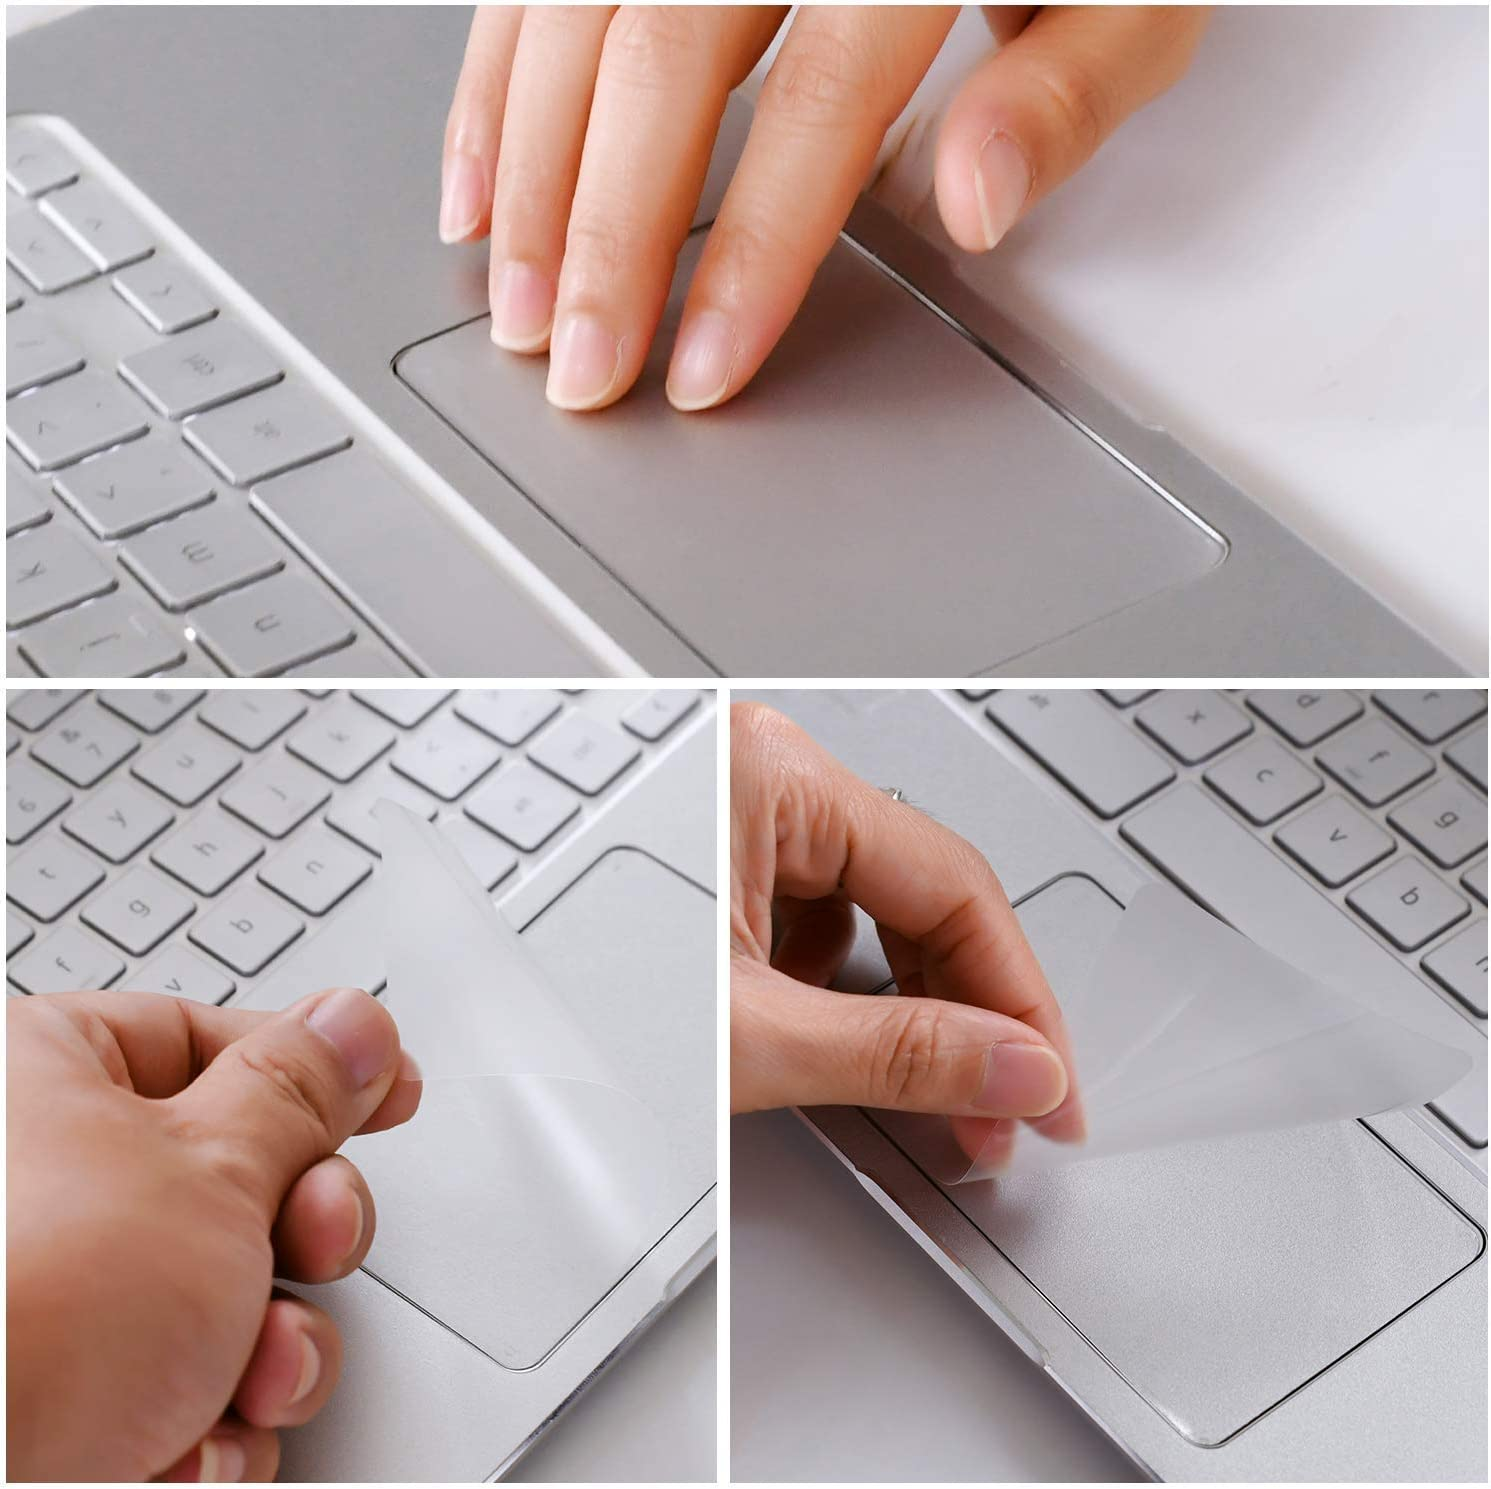 Lapogy Clear Anti-Scratch Trackpad Protector Touchpad Cover Skin for Google Pixelbook go 13.3 inch 2019,Google Pixelbook go Accessories 2 Pack